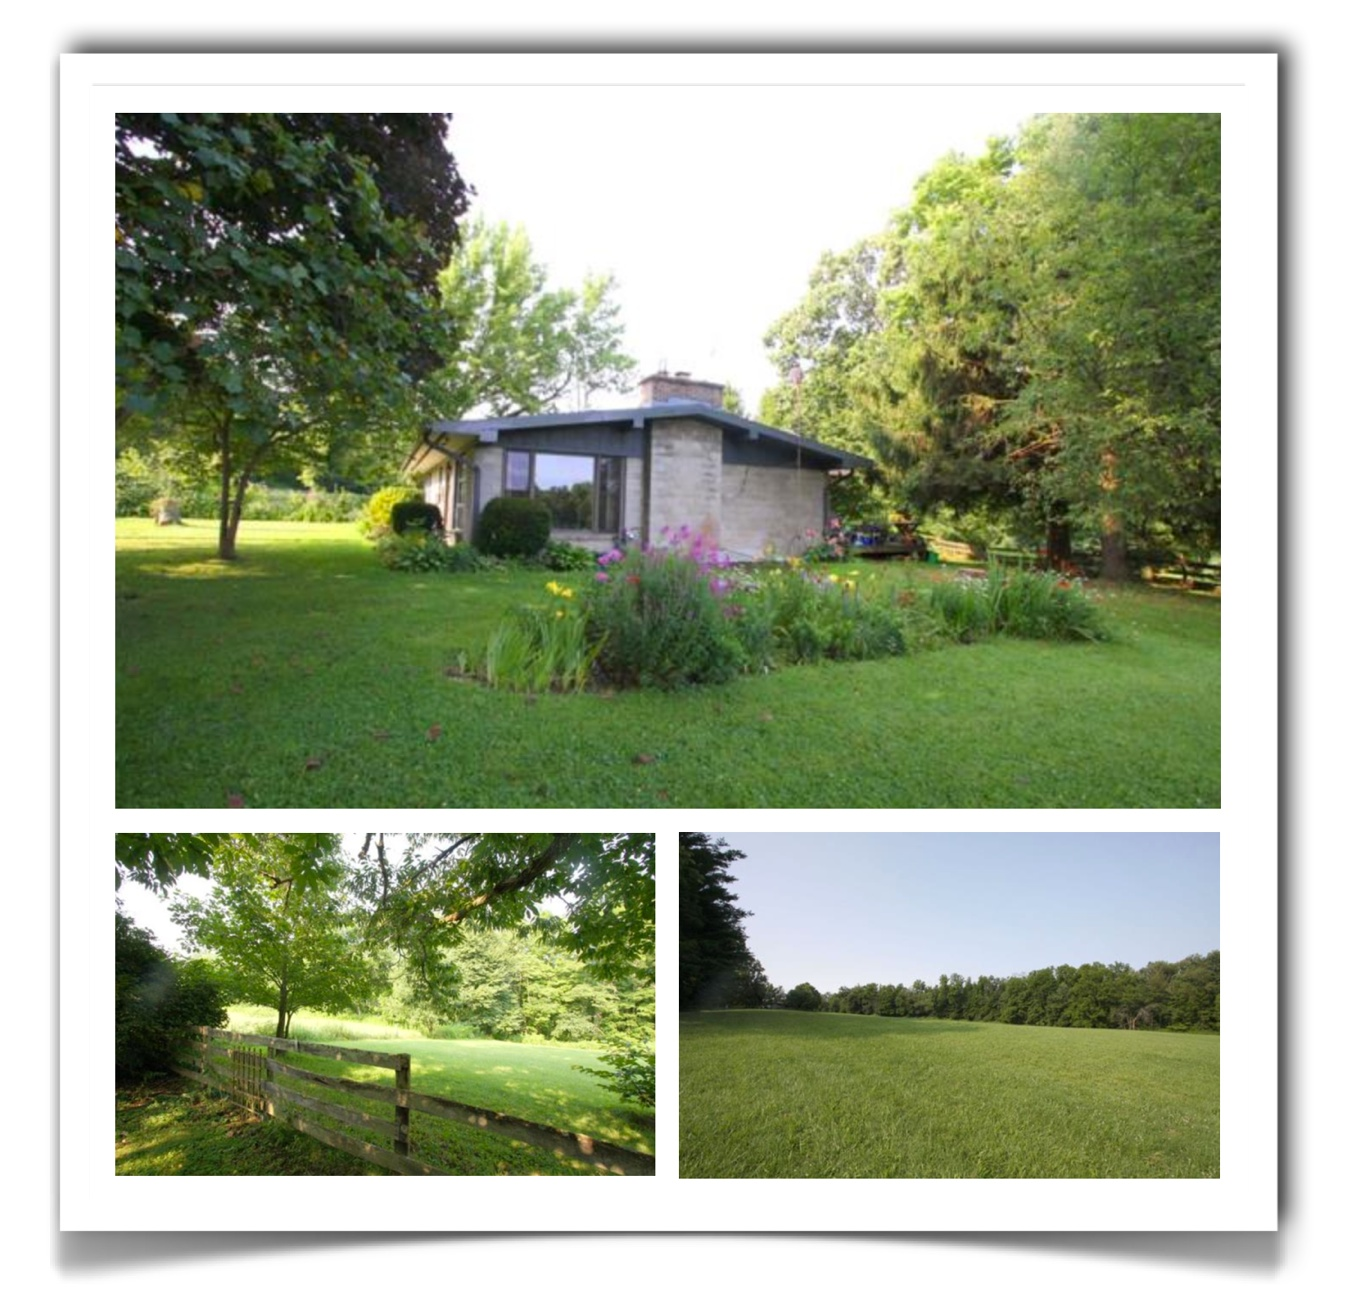 Acreage in Gambier Ohio and Kenyon College Area